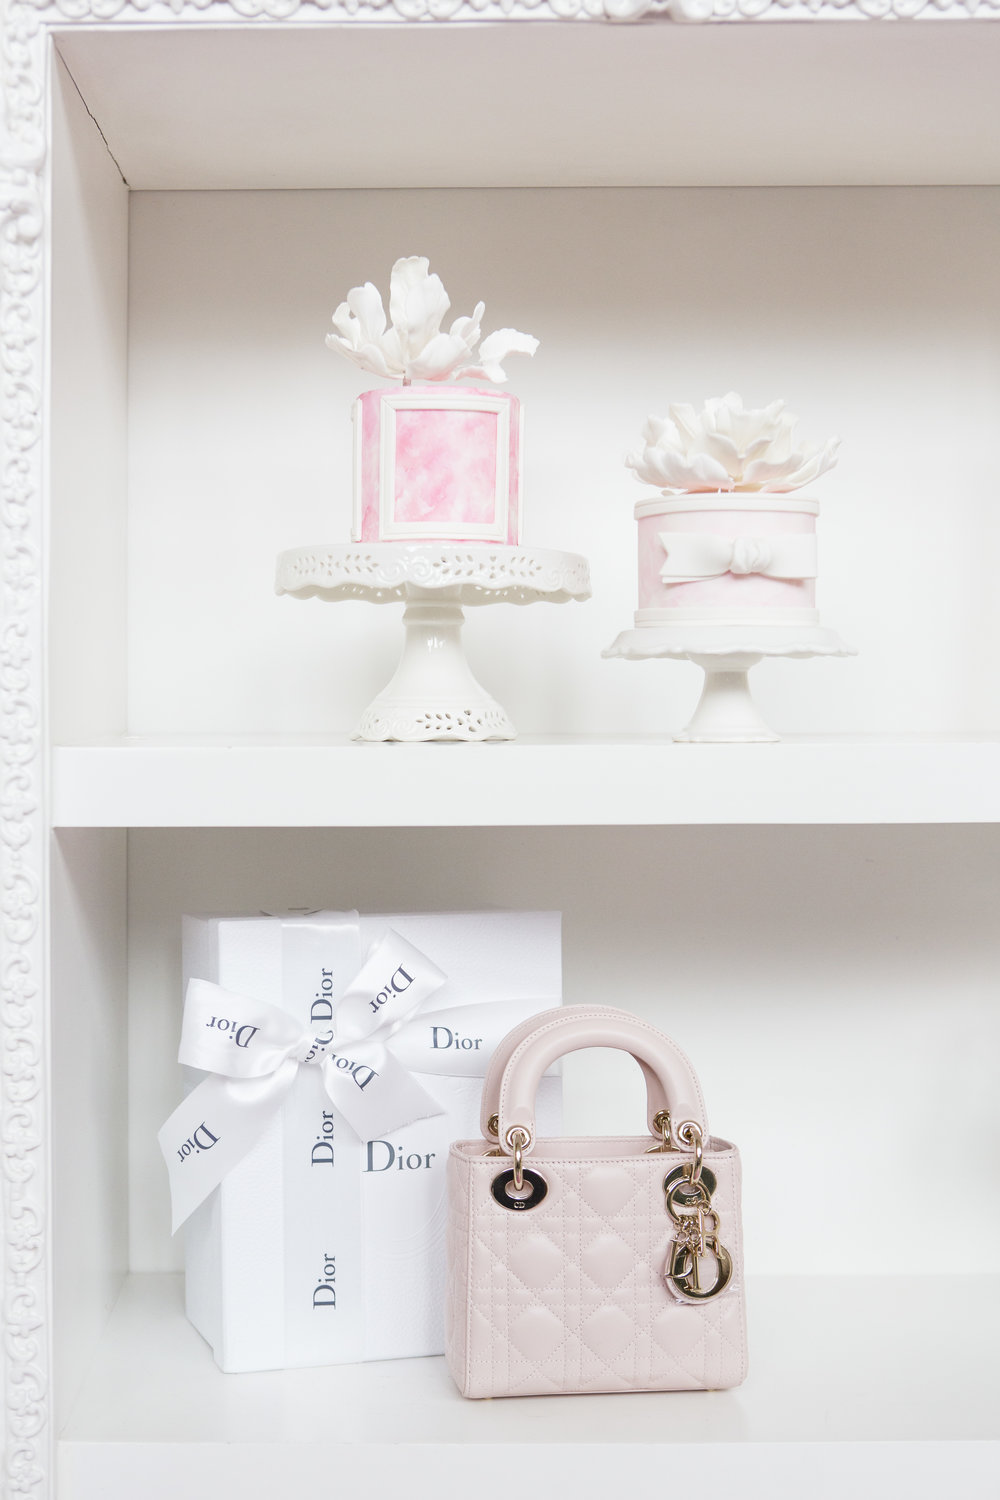 Cake & Purse - Dior Darling (Wedluxe)